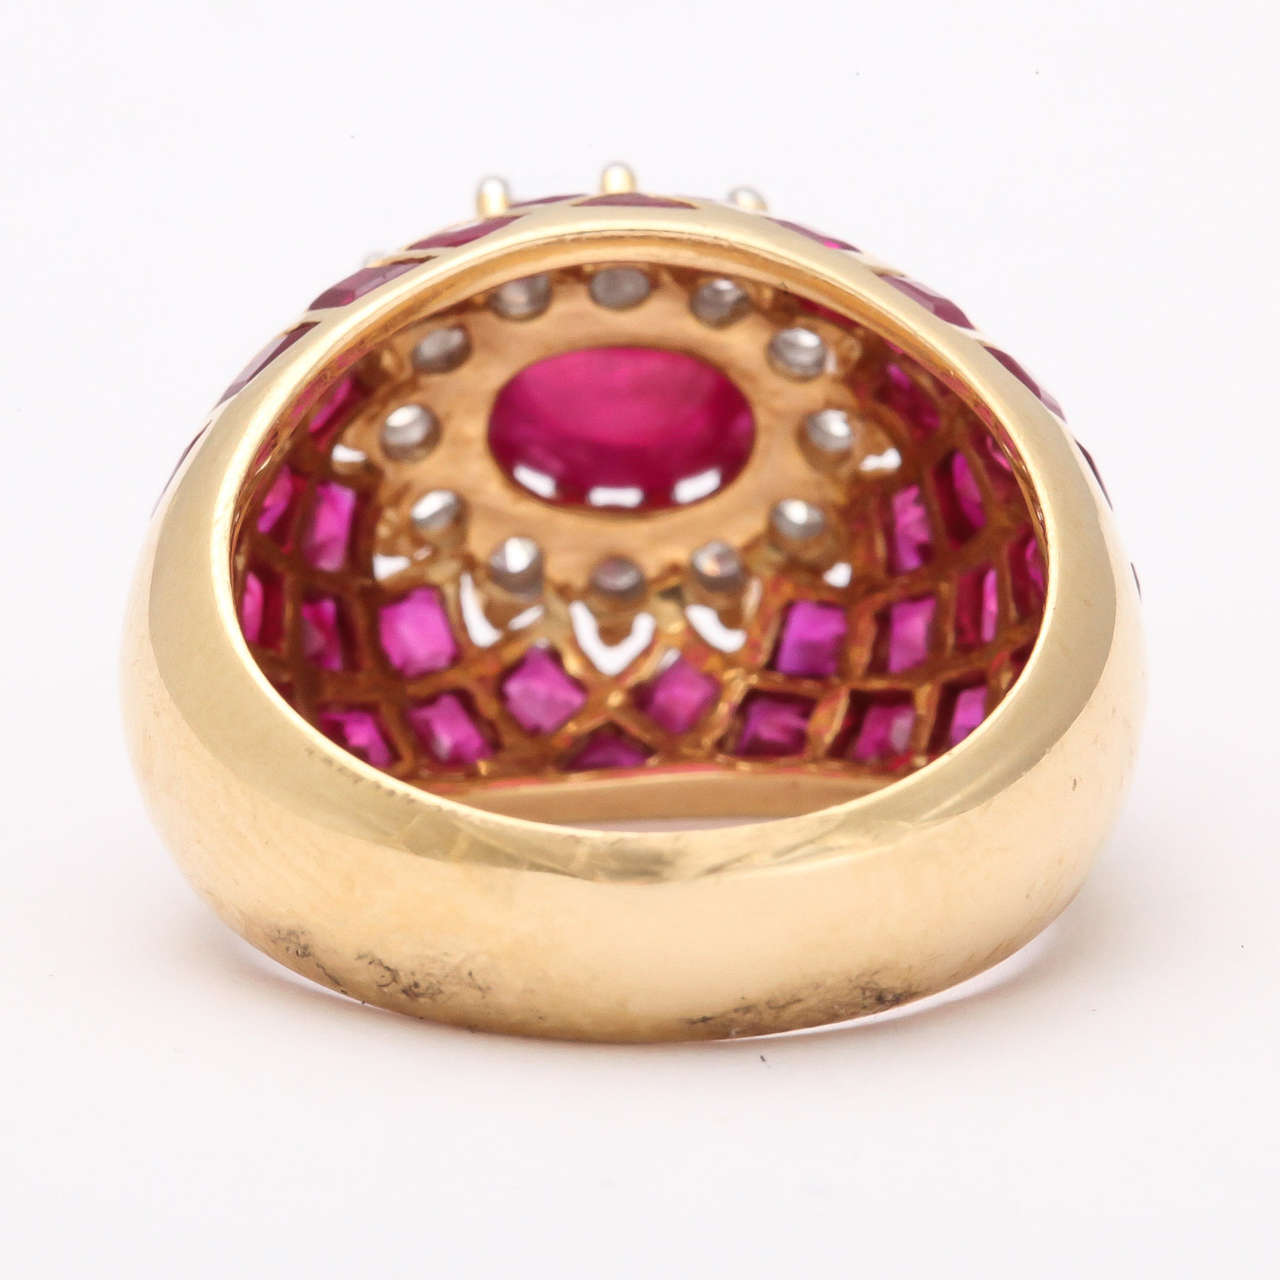 Cabochon Ruby Diamond Gold Ring 5